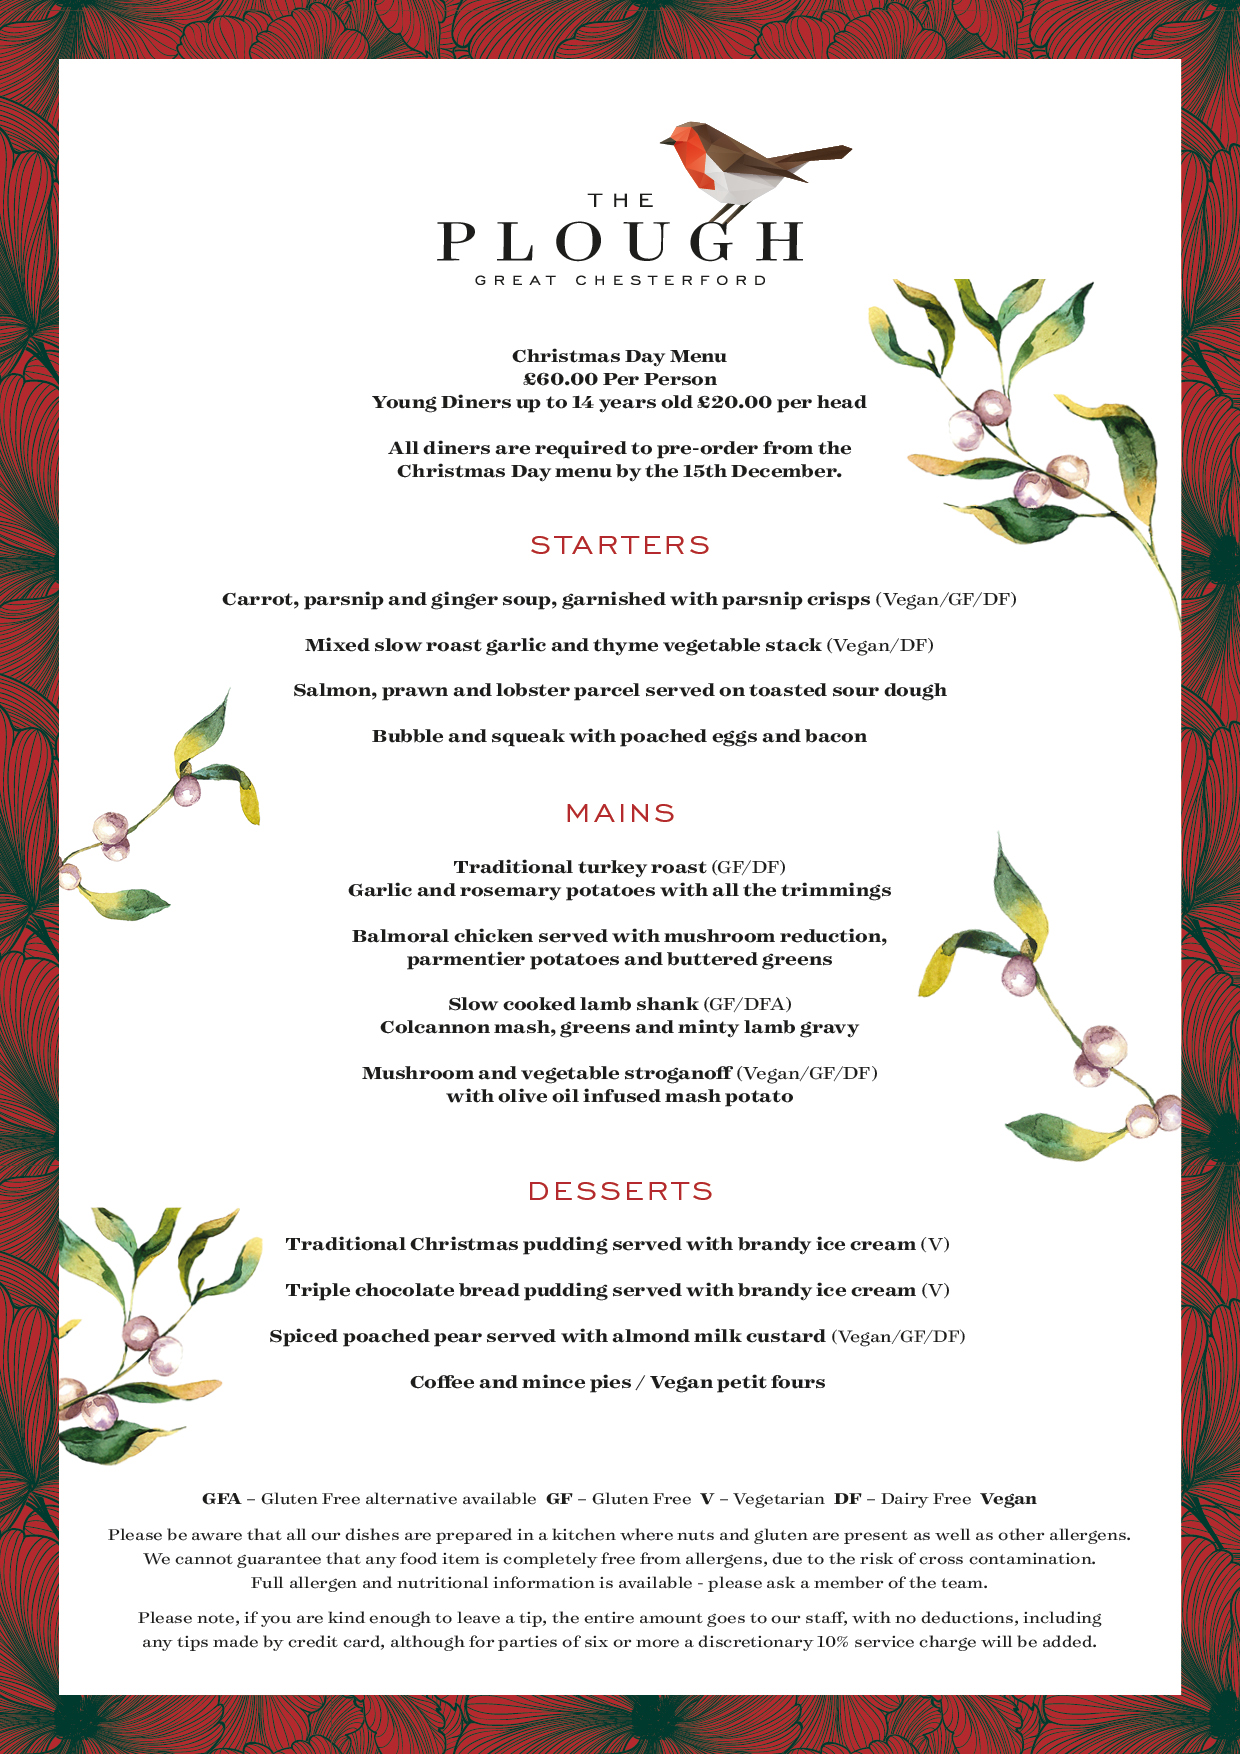 210mmX297mm_The_Plough_Christmas_Day_Menu_2019